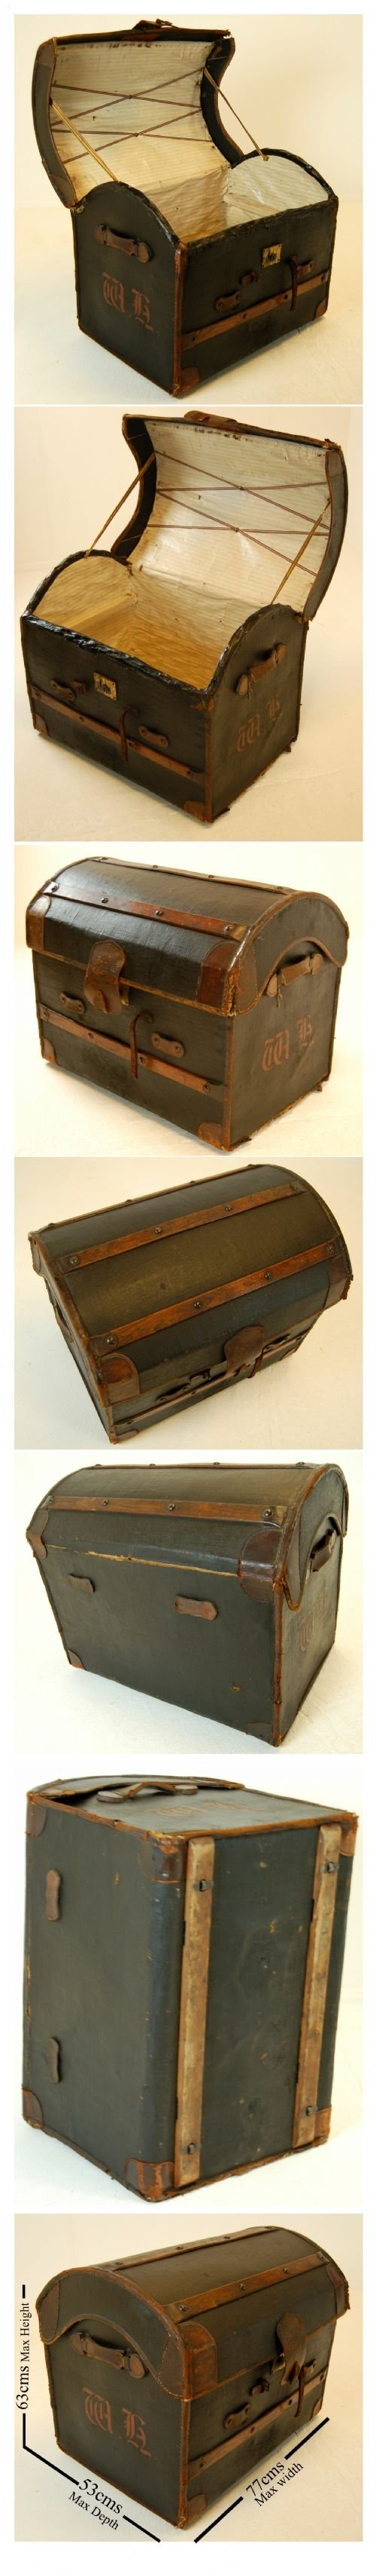 leather travel trunk luggage suitcase vintage english - photo angle #5